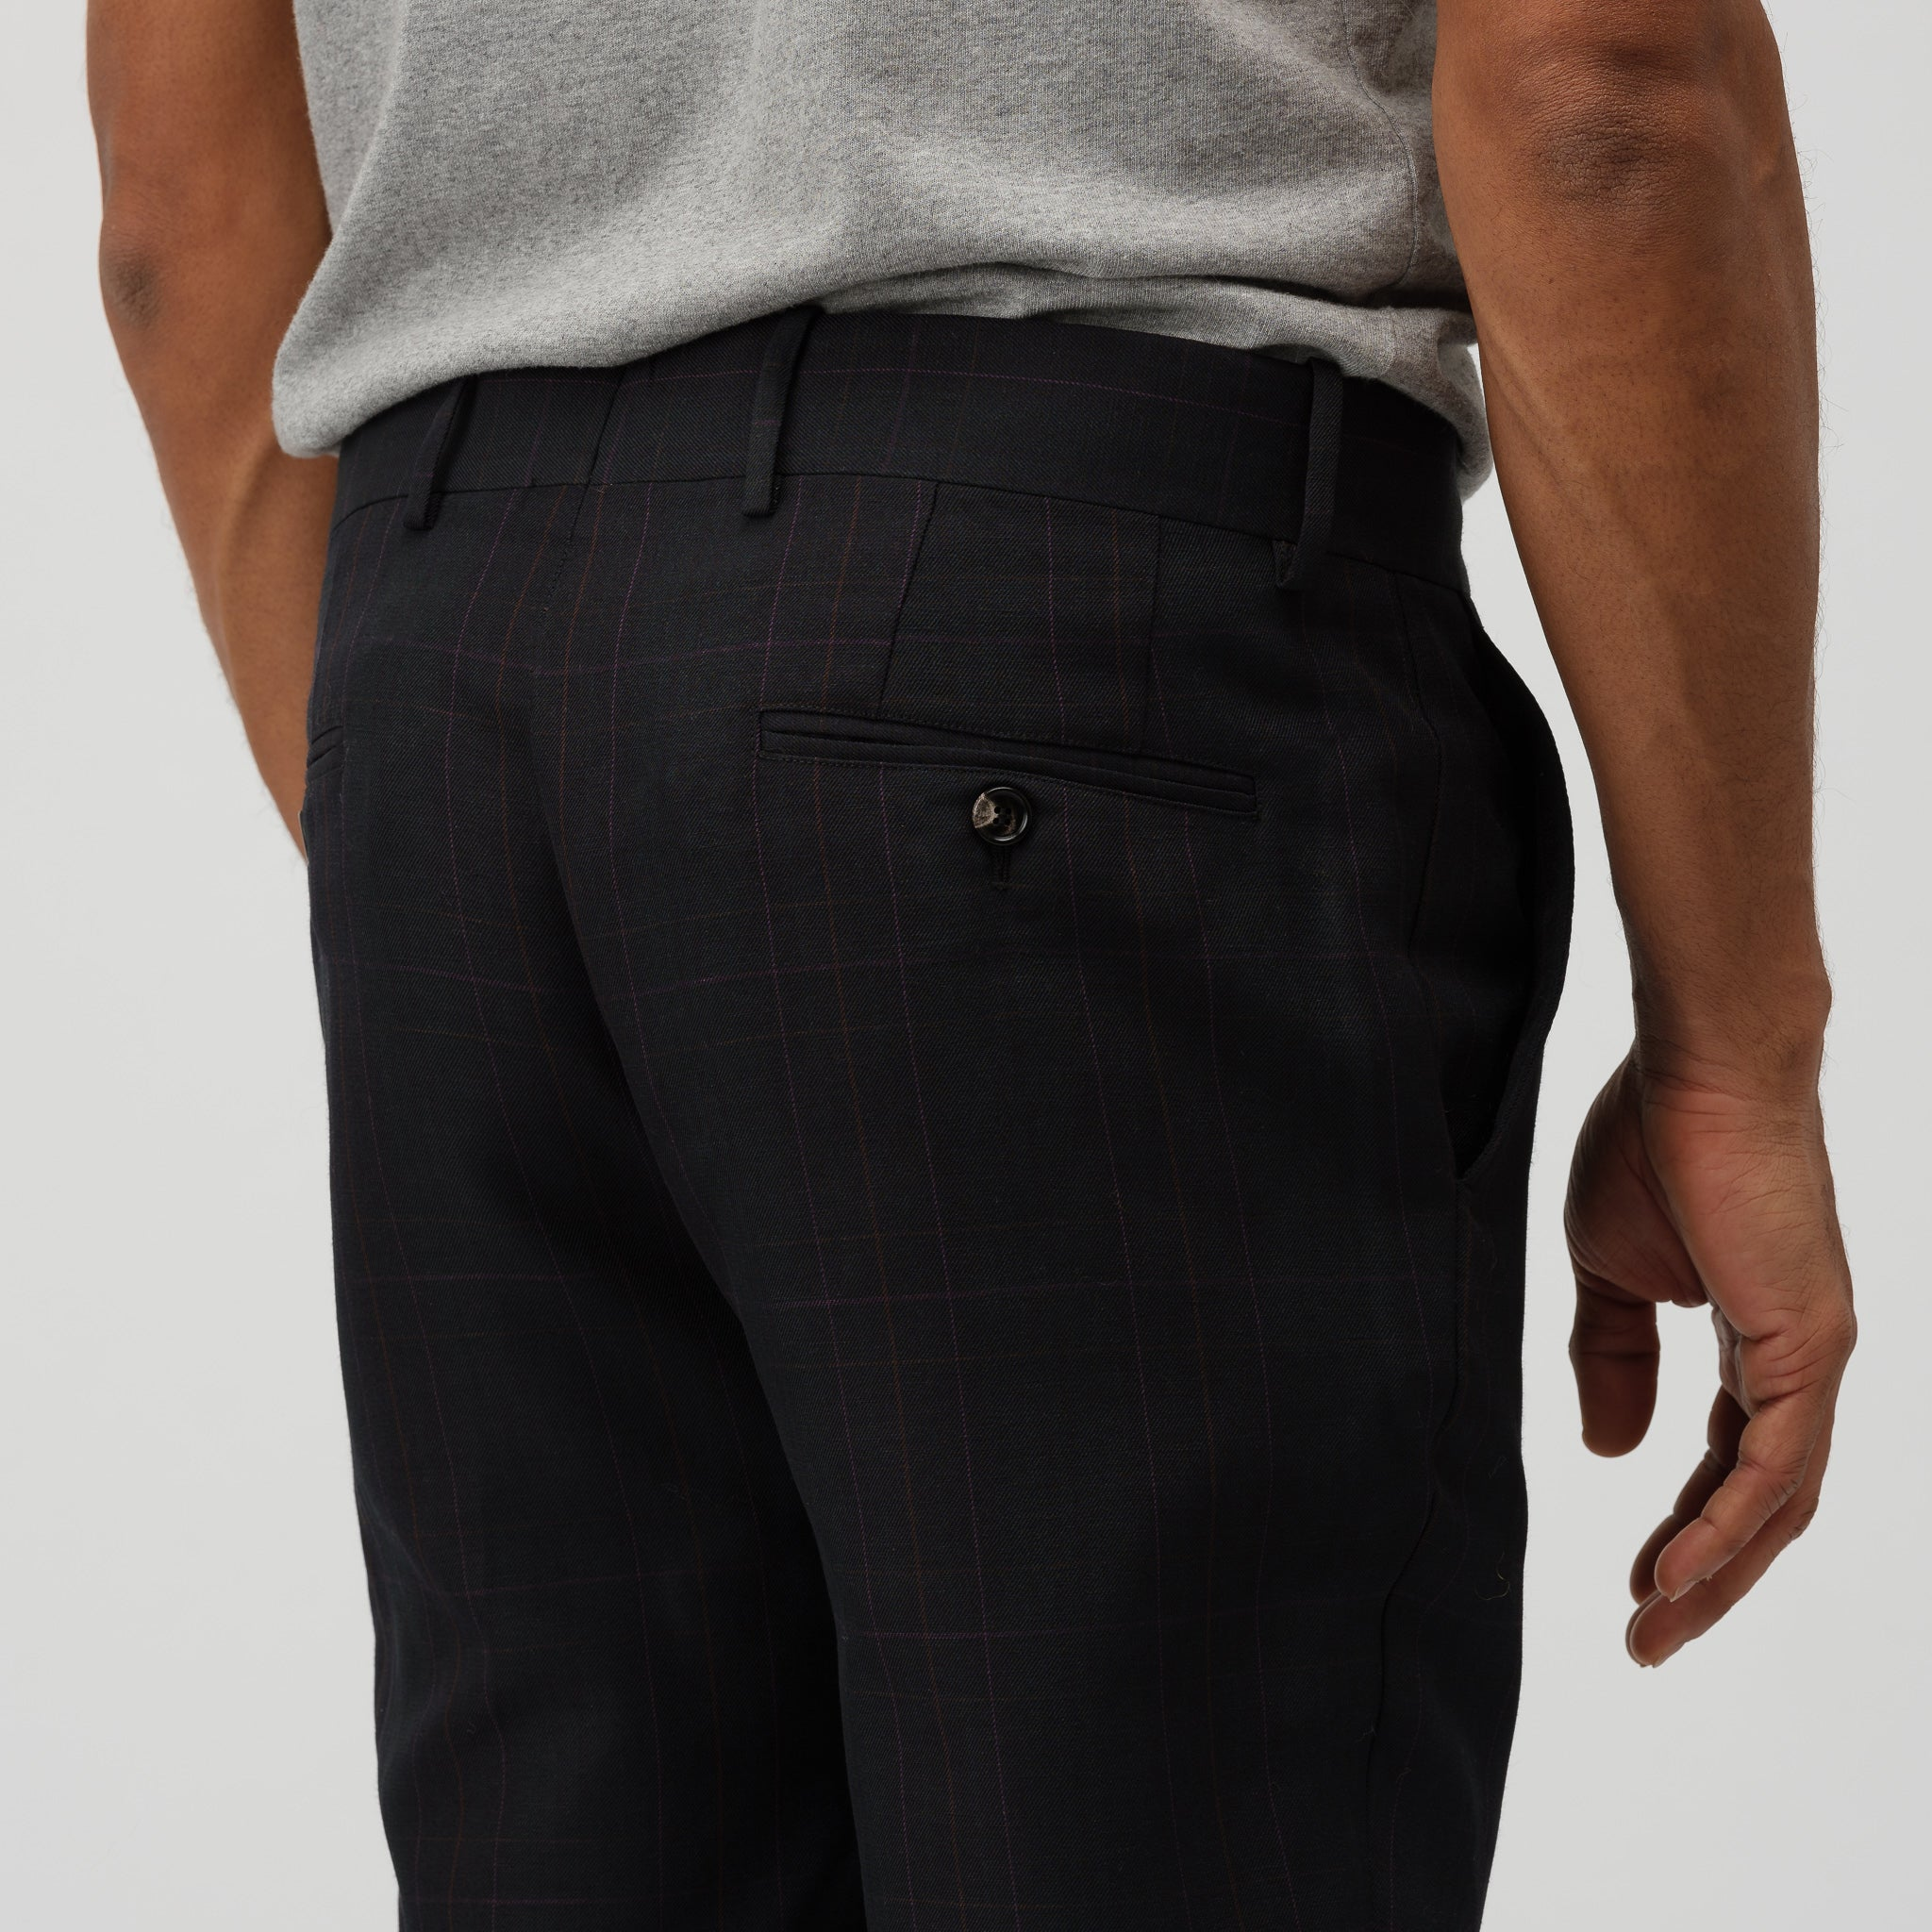 Trousers in Black Plaid